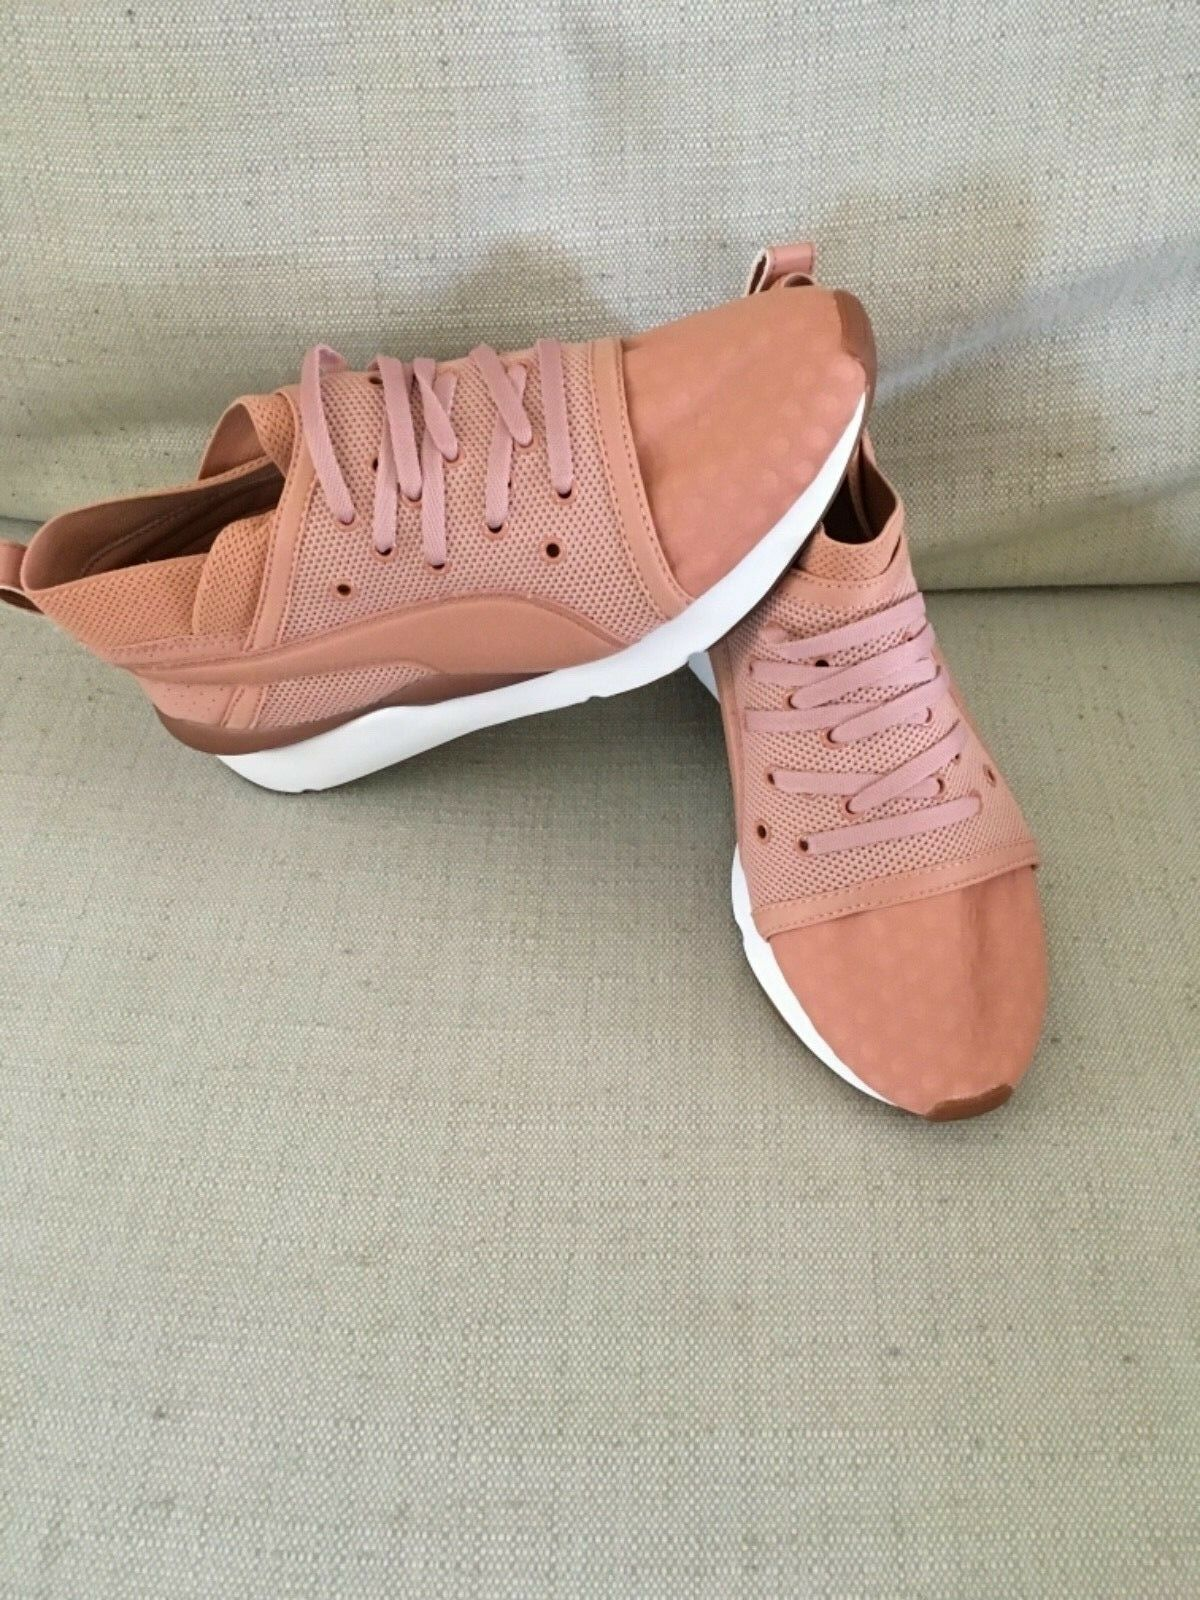 PUMA IGNITE   WOMENS  LADIES TRAINERS - BRAND NEW